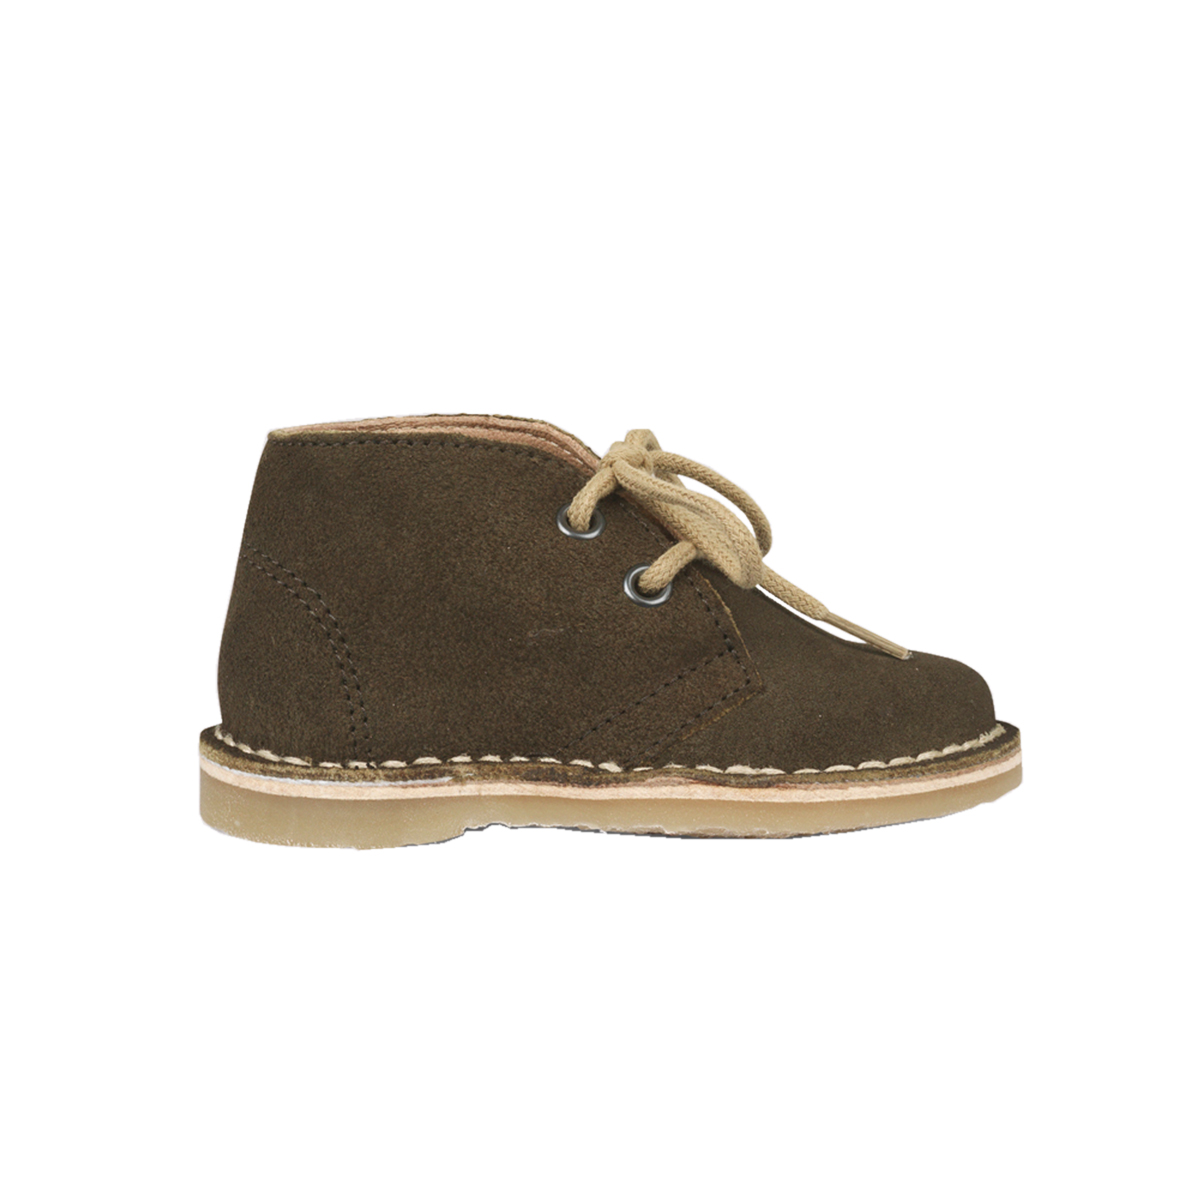 Petit Nord Desert Lace Boot In Moss